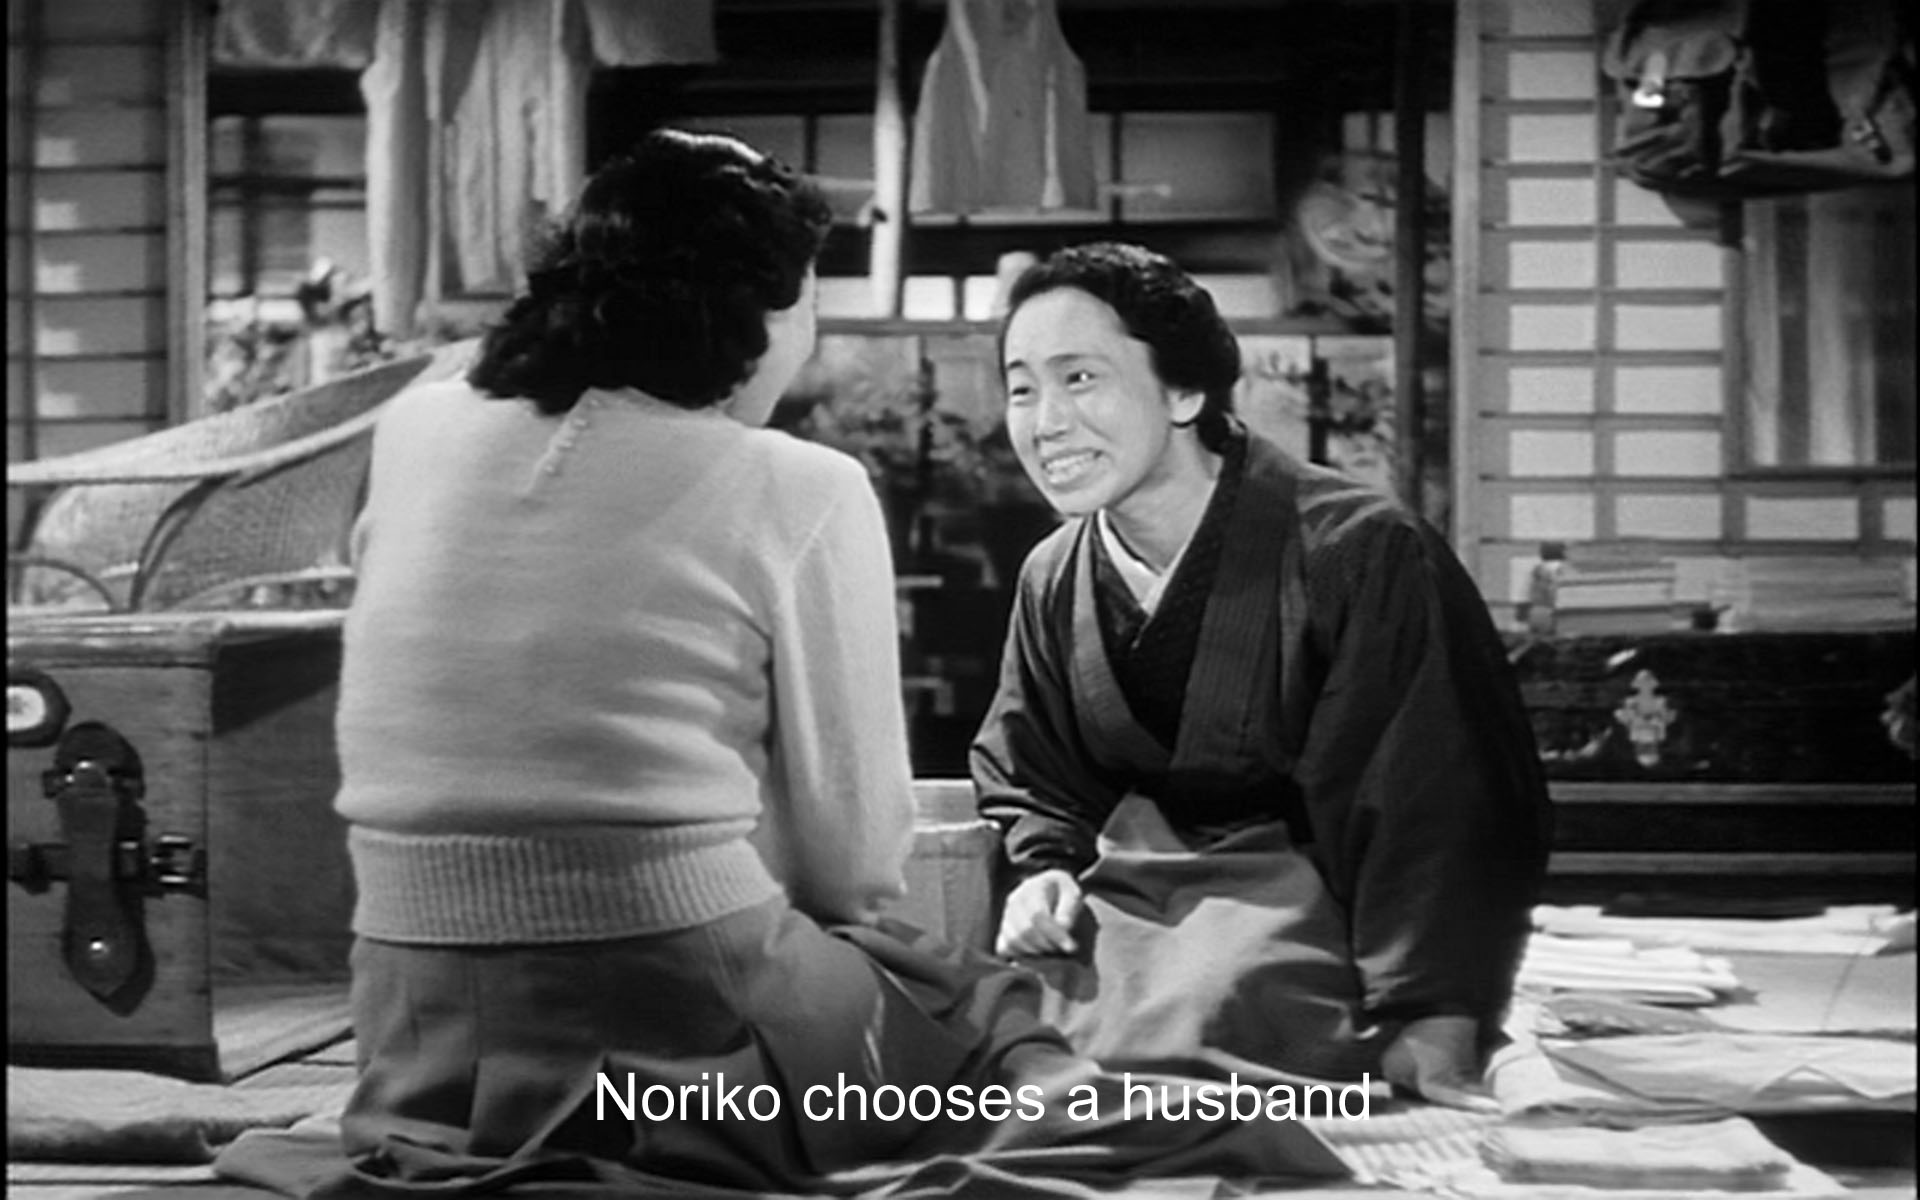 The moment of Noriko's choice